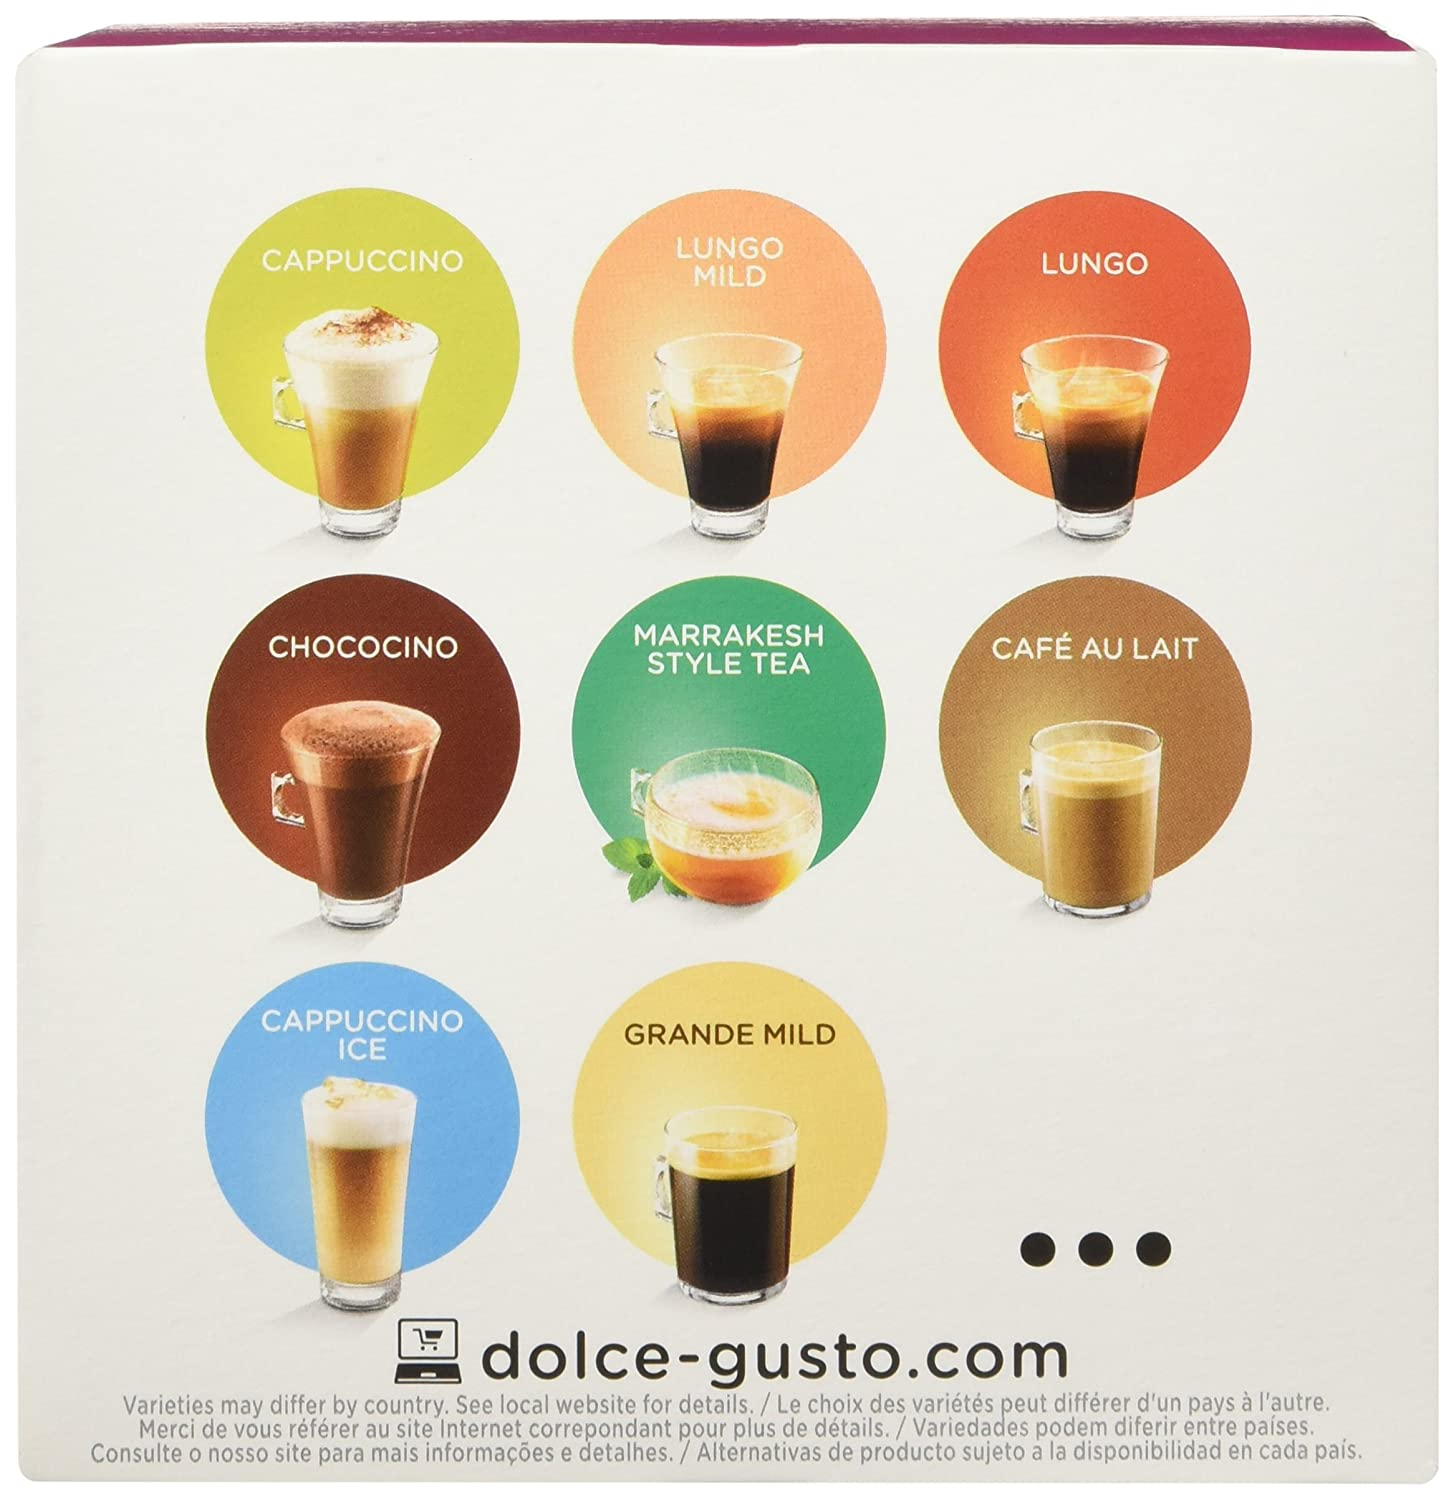 Nescafe Dolce Gusto Capsules, Espresso, 16 ct: Amazon.com: Grocery & Gourmet Food